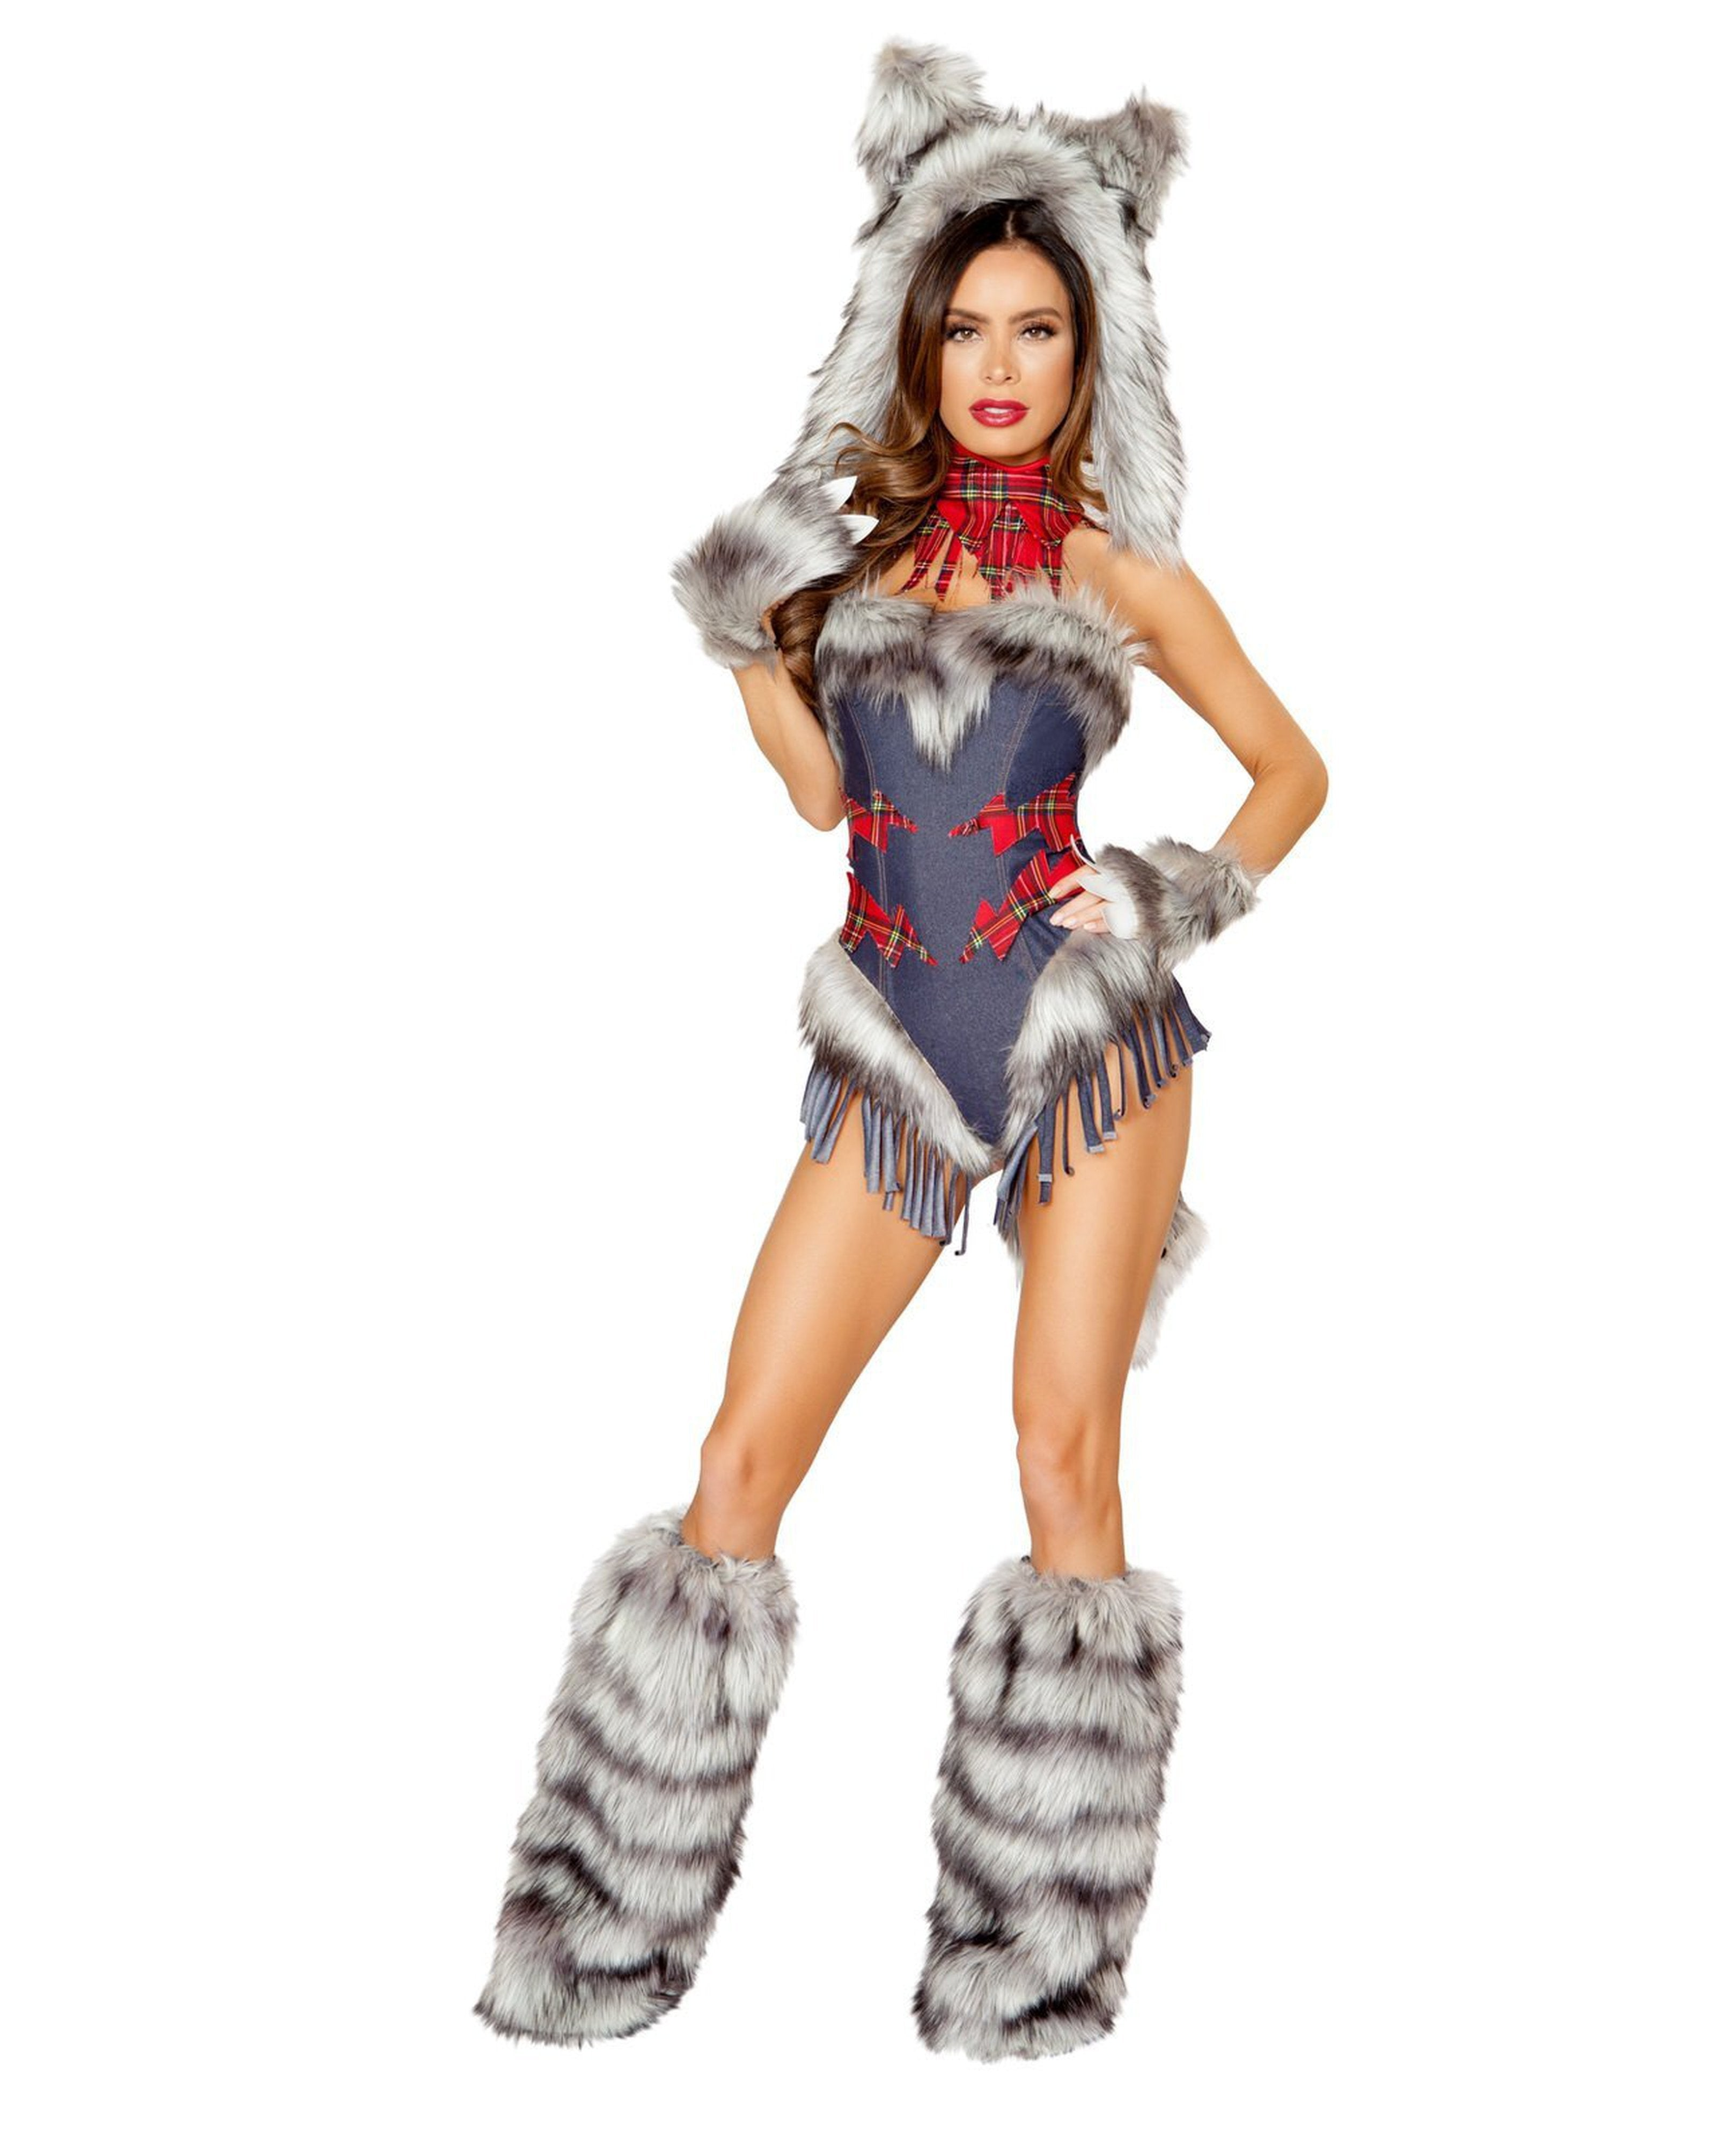 Big Bad Wolf Costume costumes Size SmallColor Blue/Grey/RedNakees